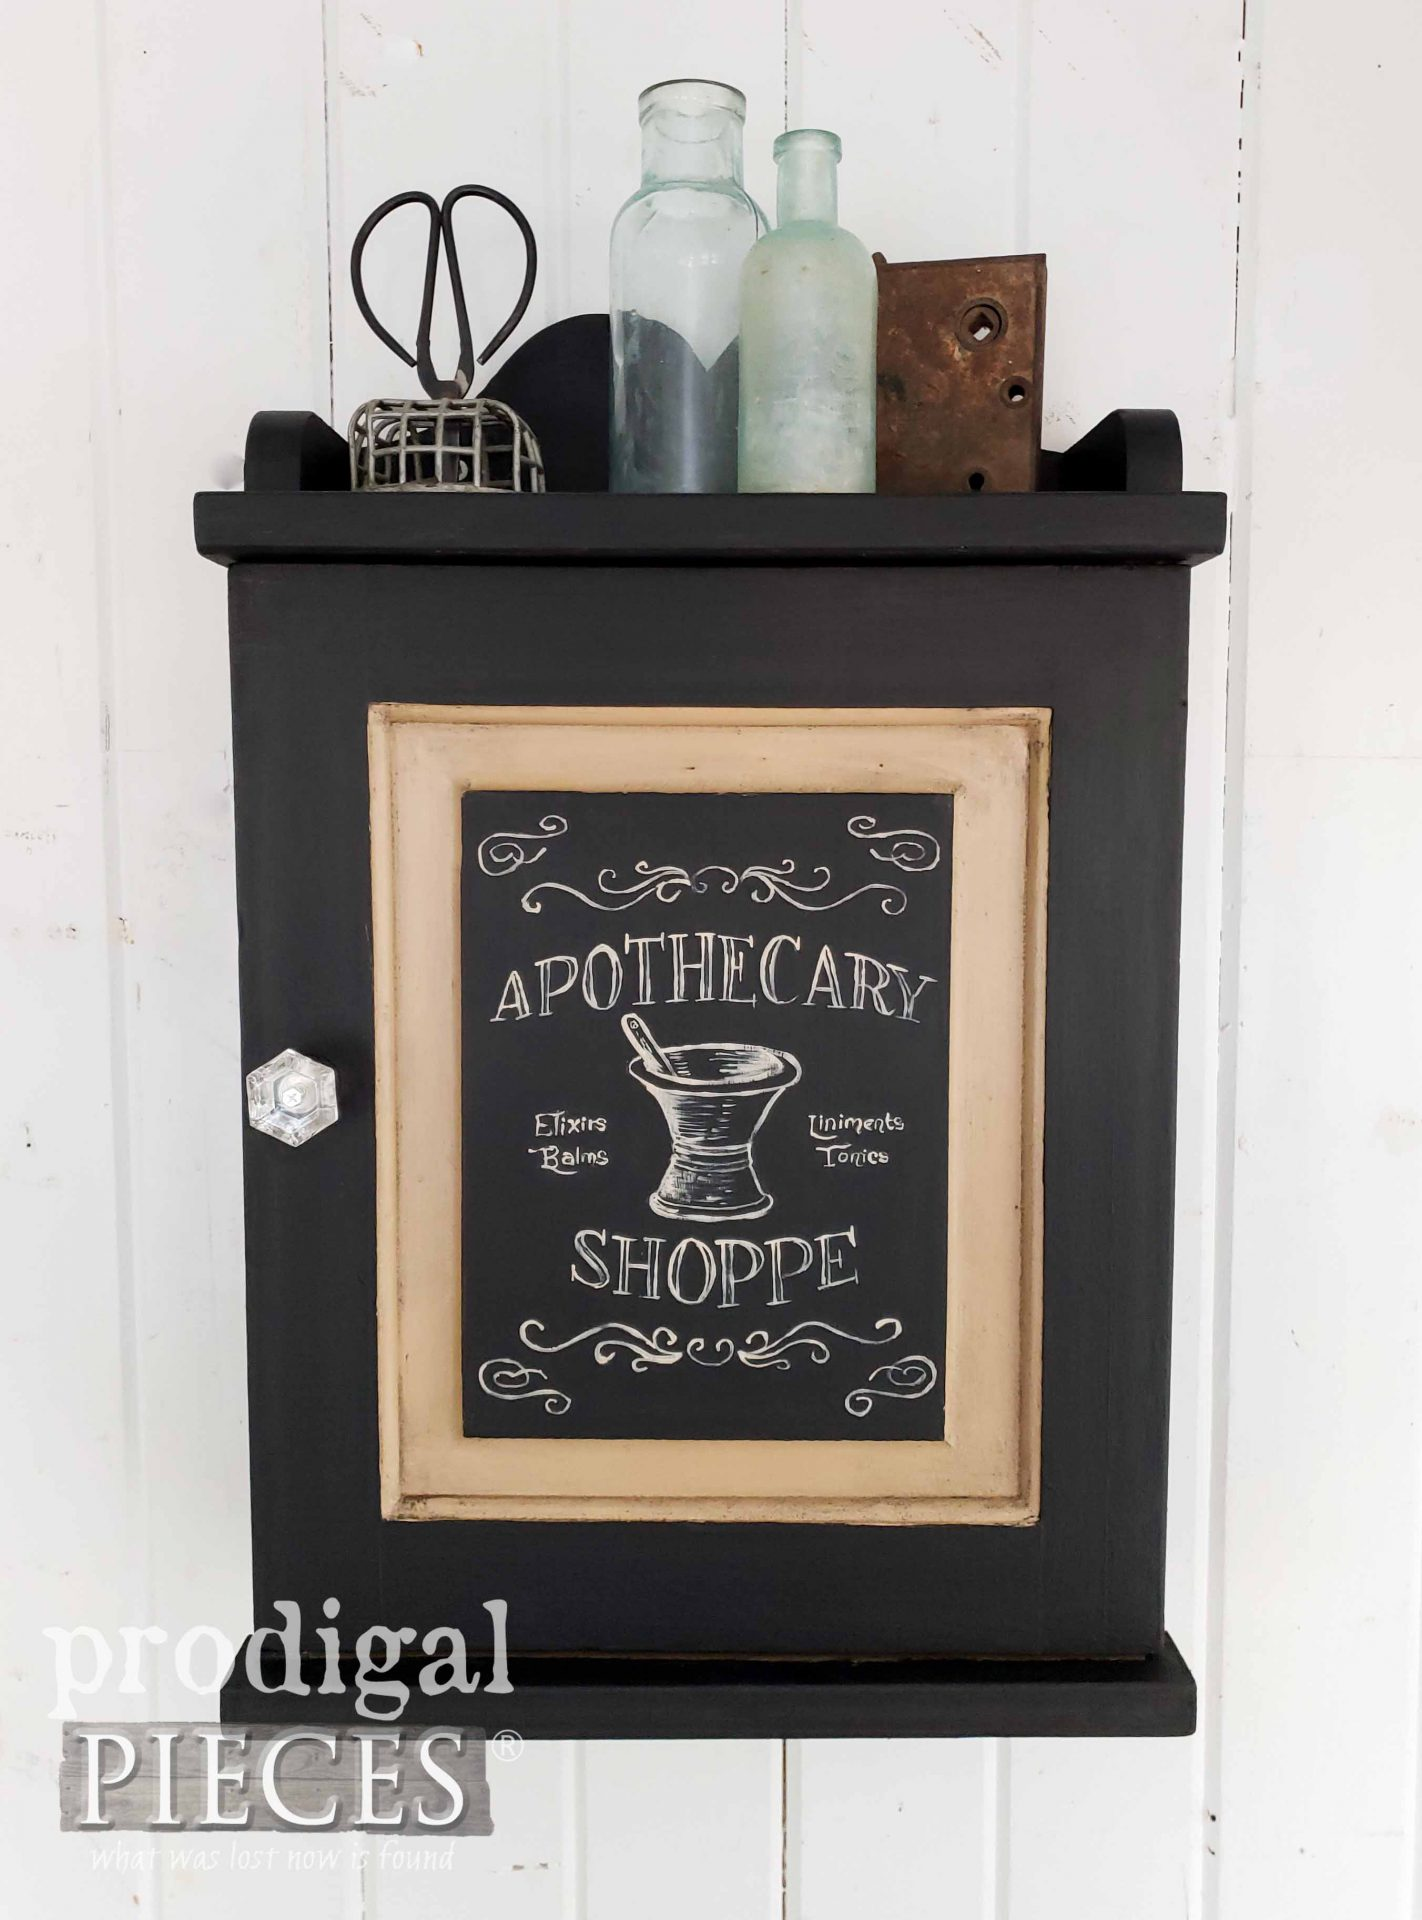 Industrial Farmhouse Vintage Apothecary Cabinet with Typography by Larissa of Prodigal Pieces | prodigalpieces.com #prodigalpieces #farmhouse #home #industrial #vintage #homedecor